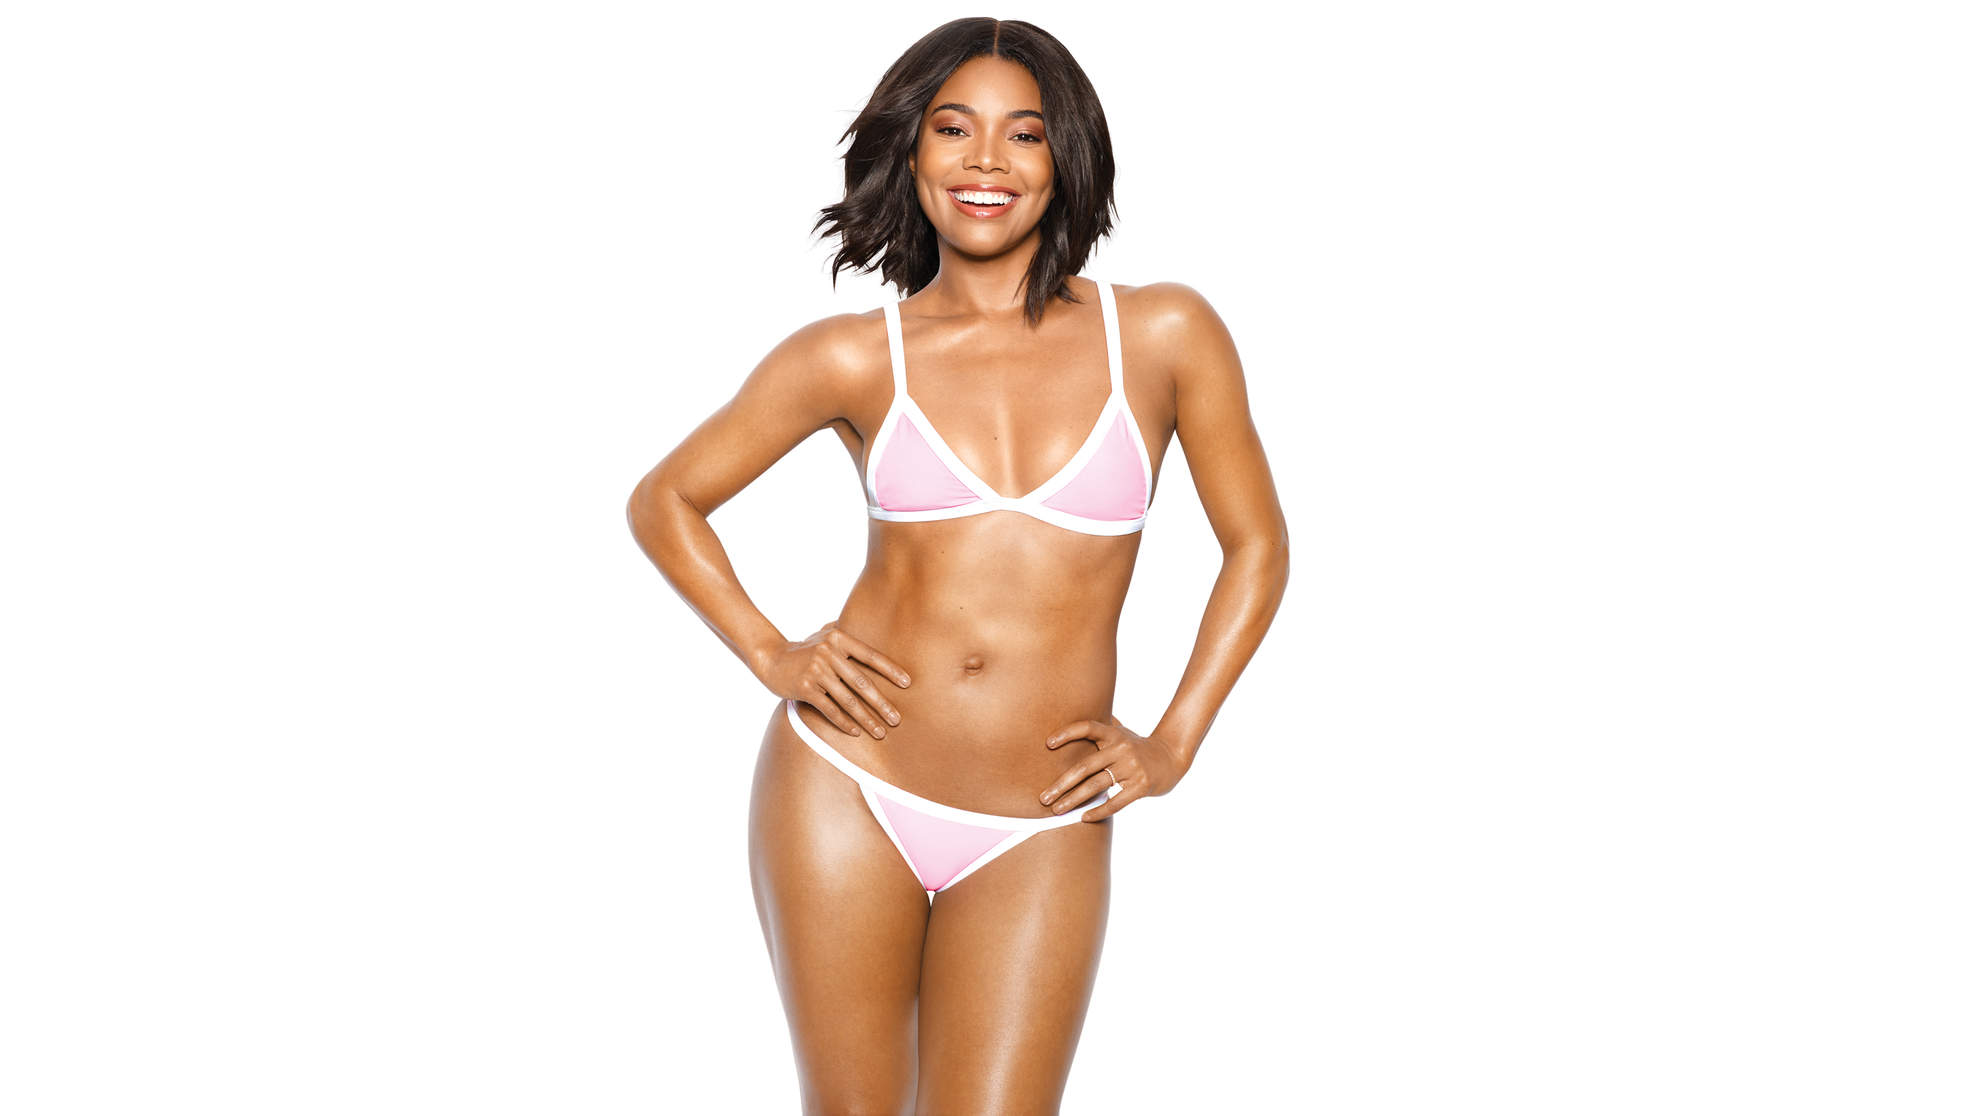 gabrielle-union-cover-bikini-white